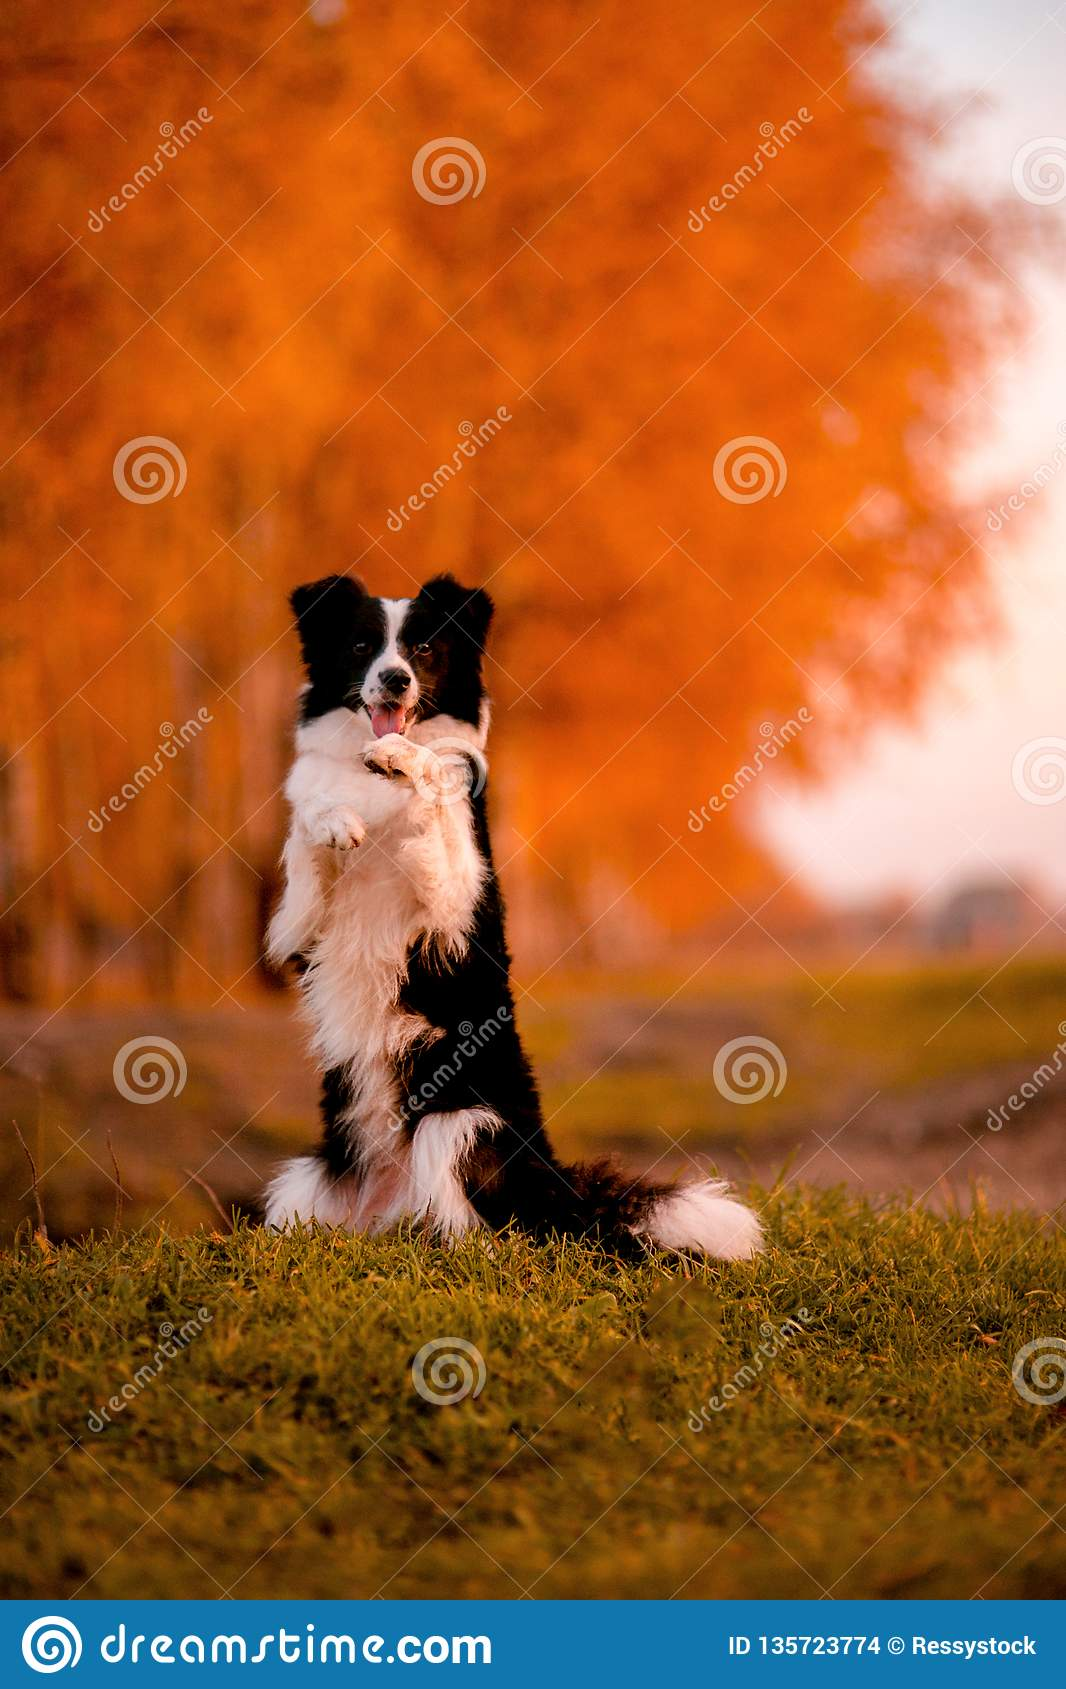 Black and white dog Border collie stay on grass. sunset. yellow forest on background. autumn